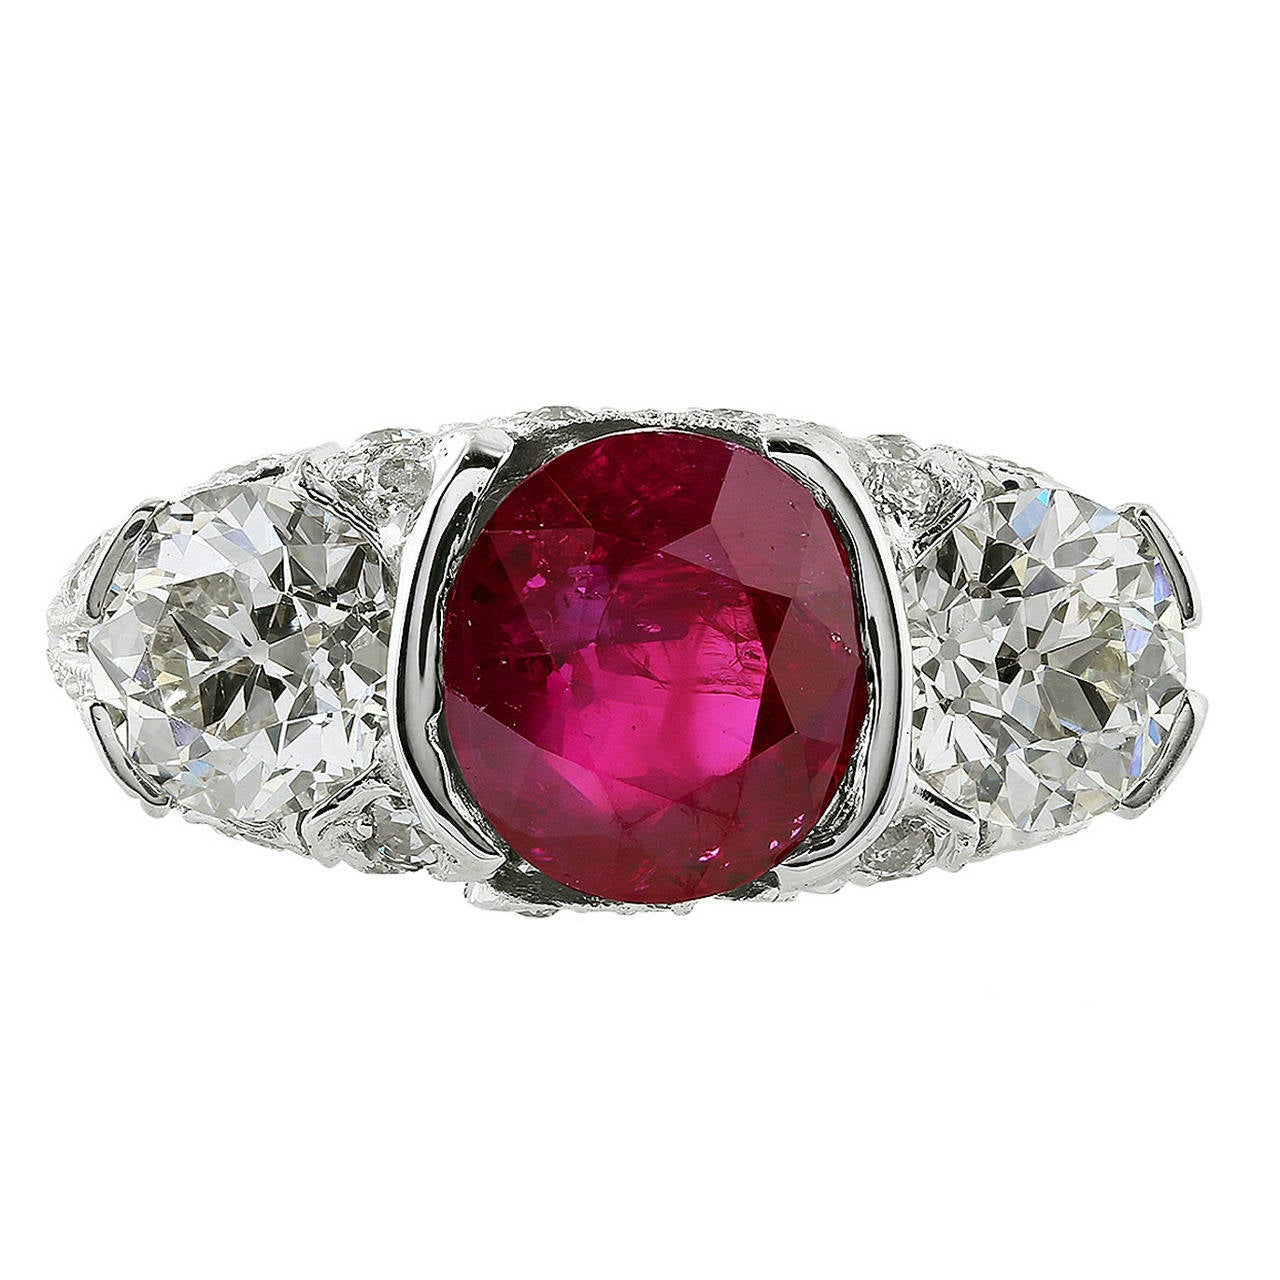 3.52 Carat Burma Ruby Diamond Platinum Ring